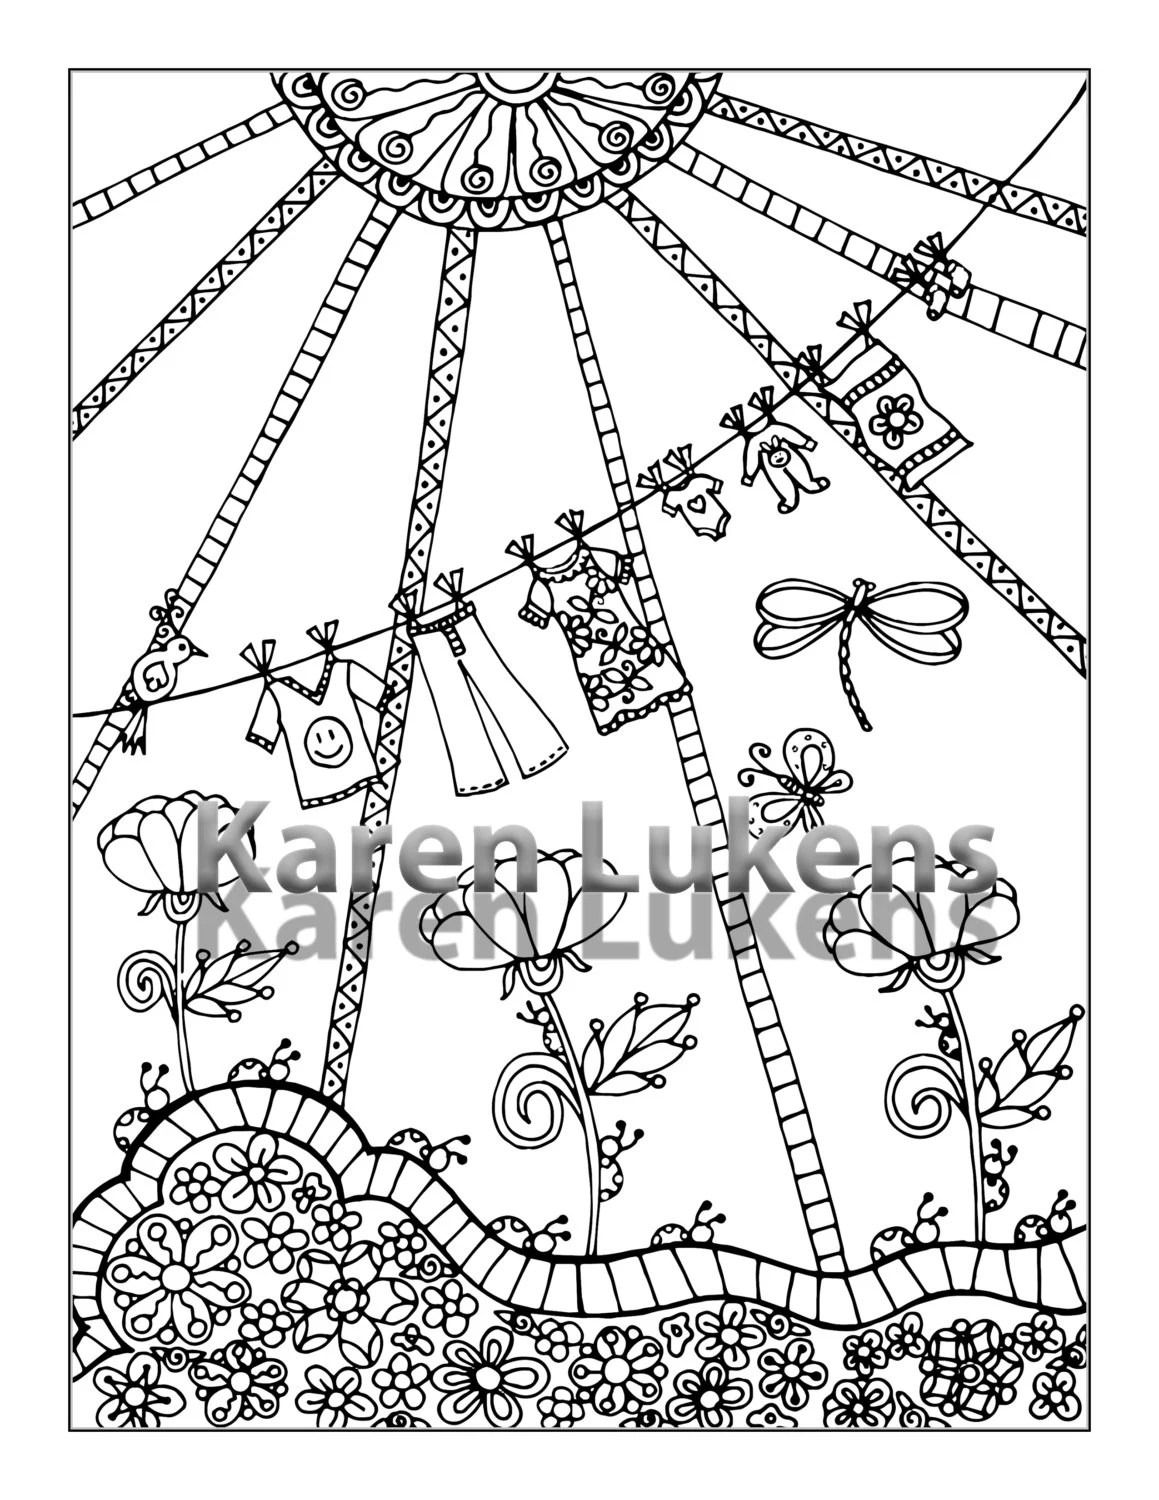 Clothes Line 1 Adult Coloring Book Page Printable Instant